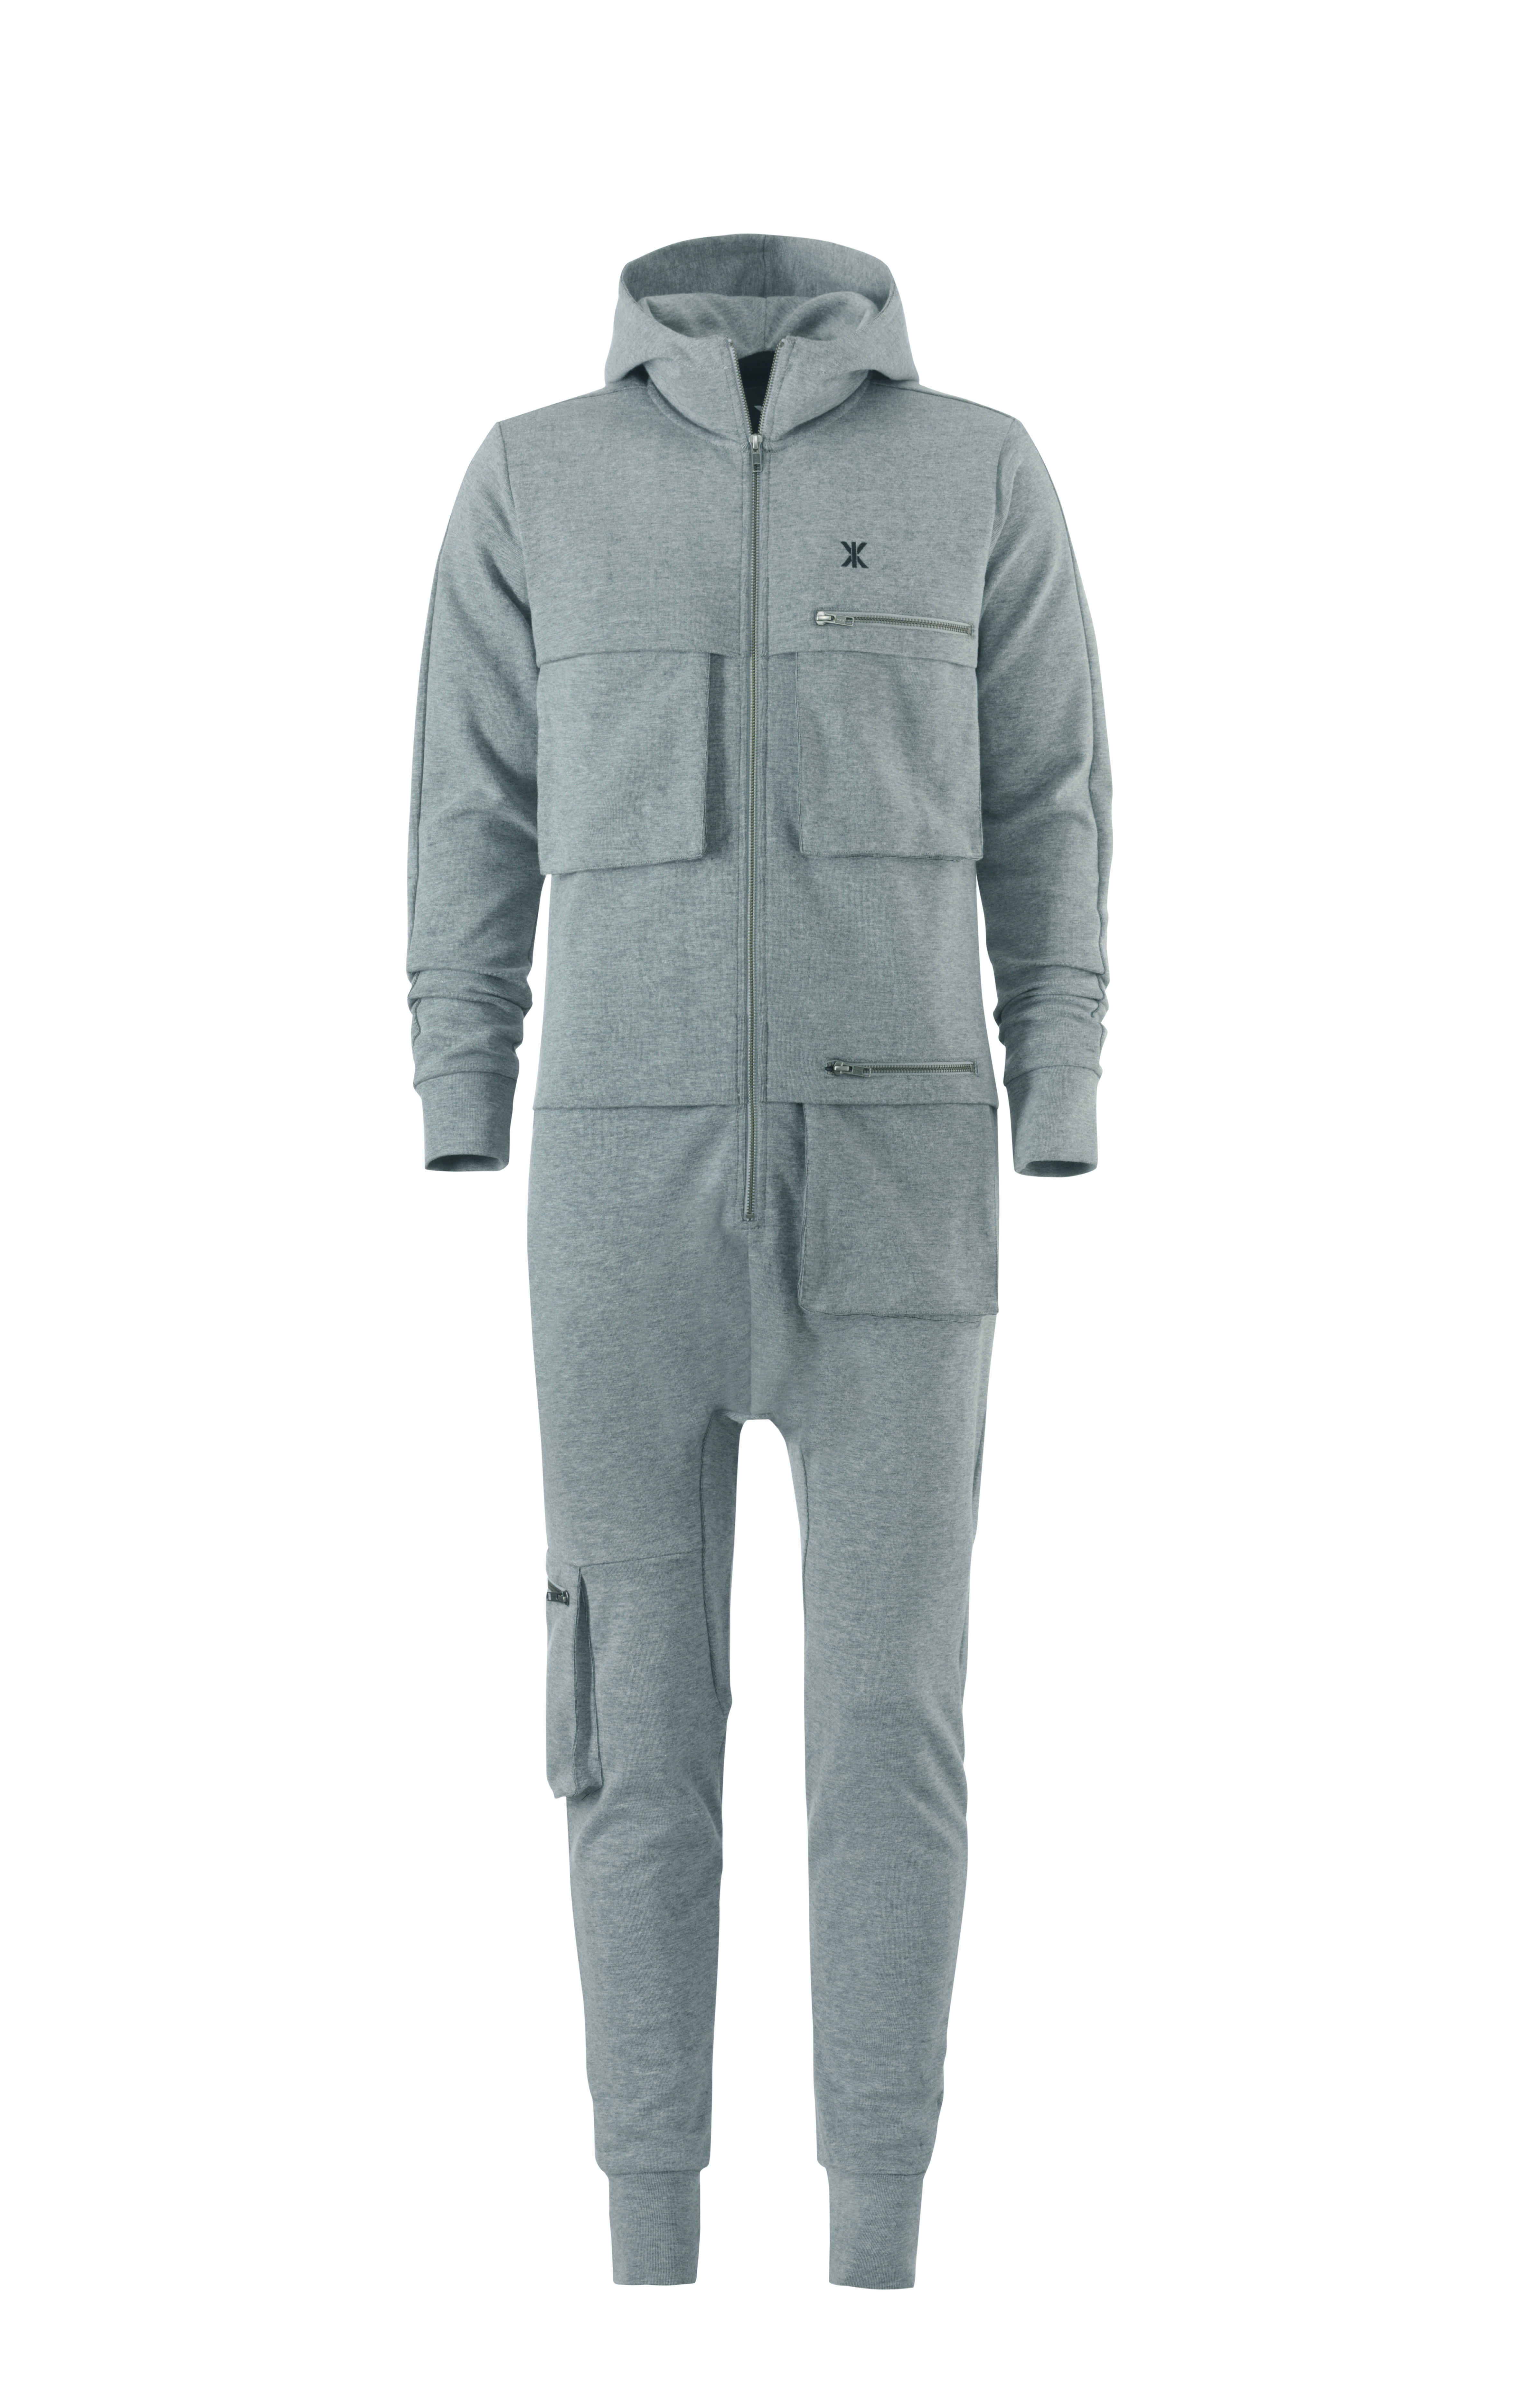 OnePiece Unisex Jumpsuit Distance OnePiece Jump In AS /(Apparel ...